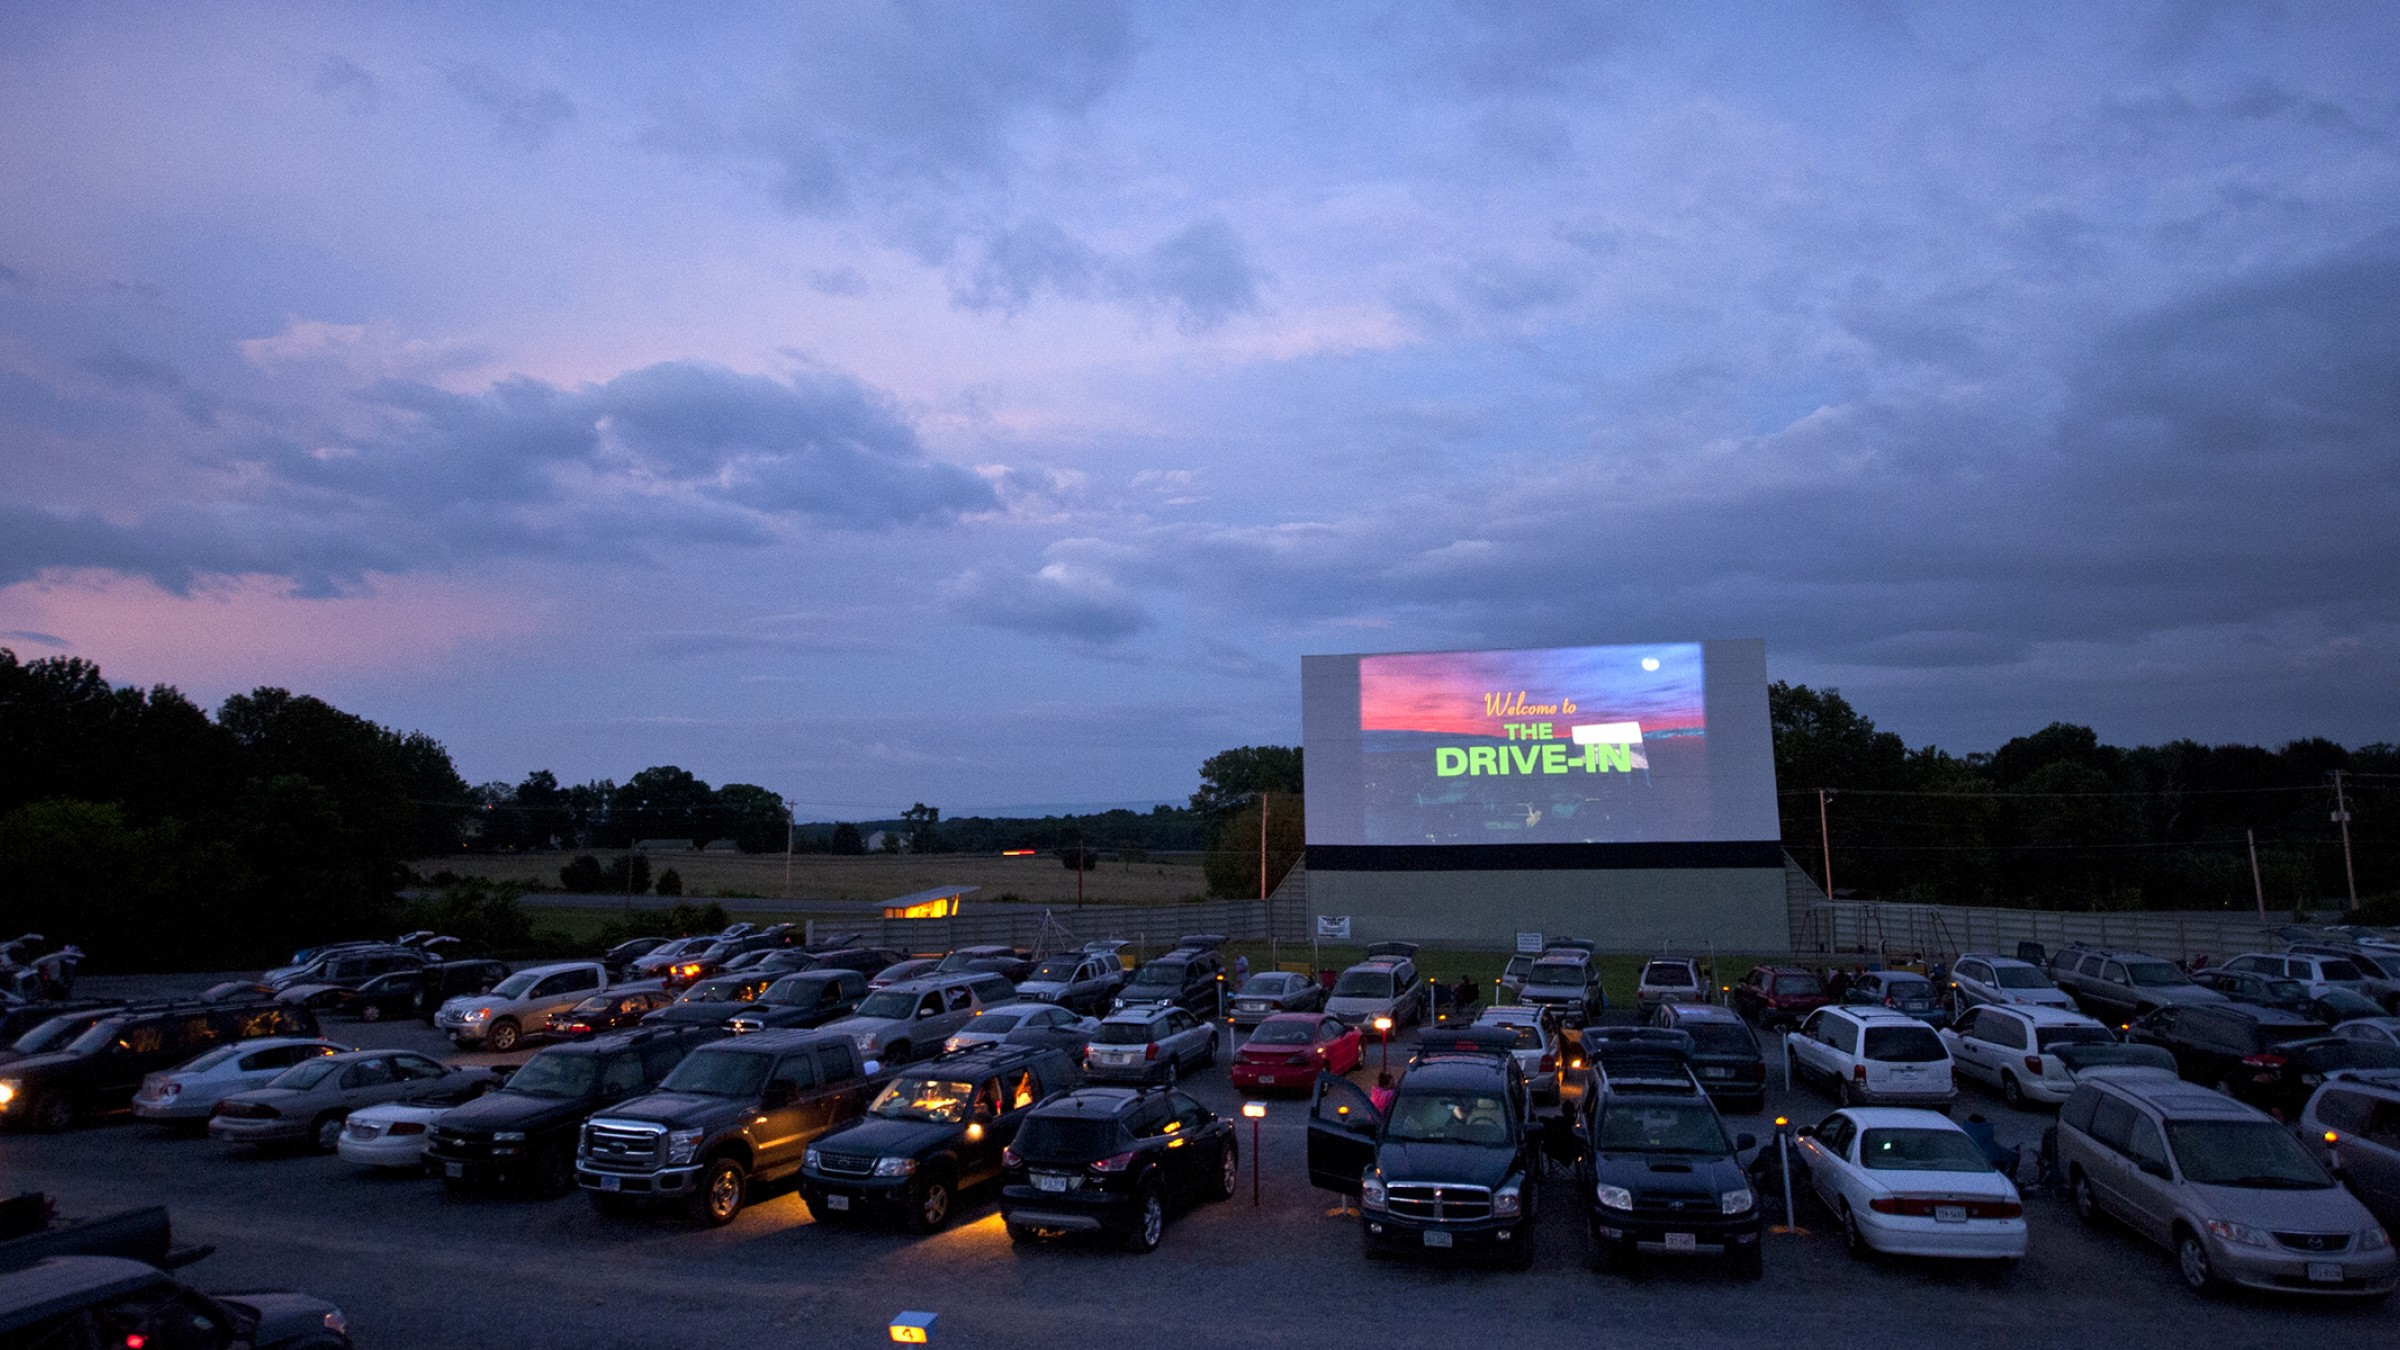 Drive In Movies Are Making A Big Comeback In The Age Of Coronavirus